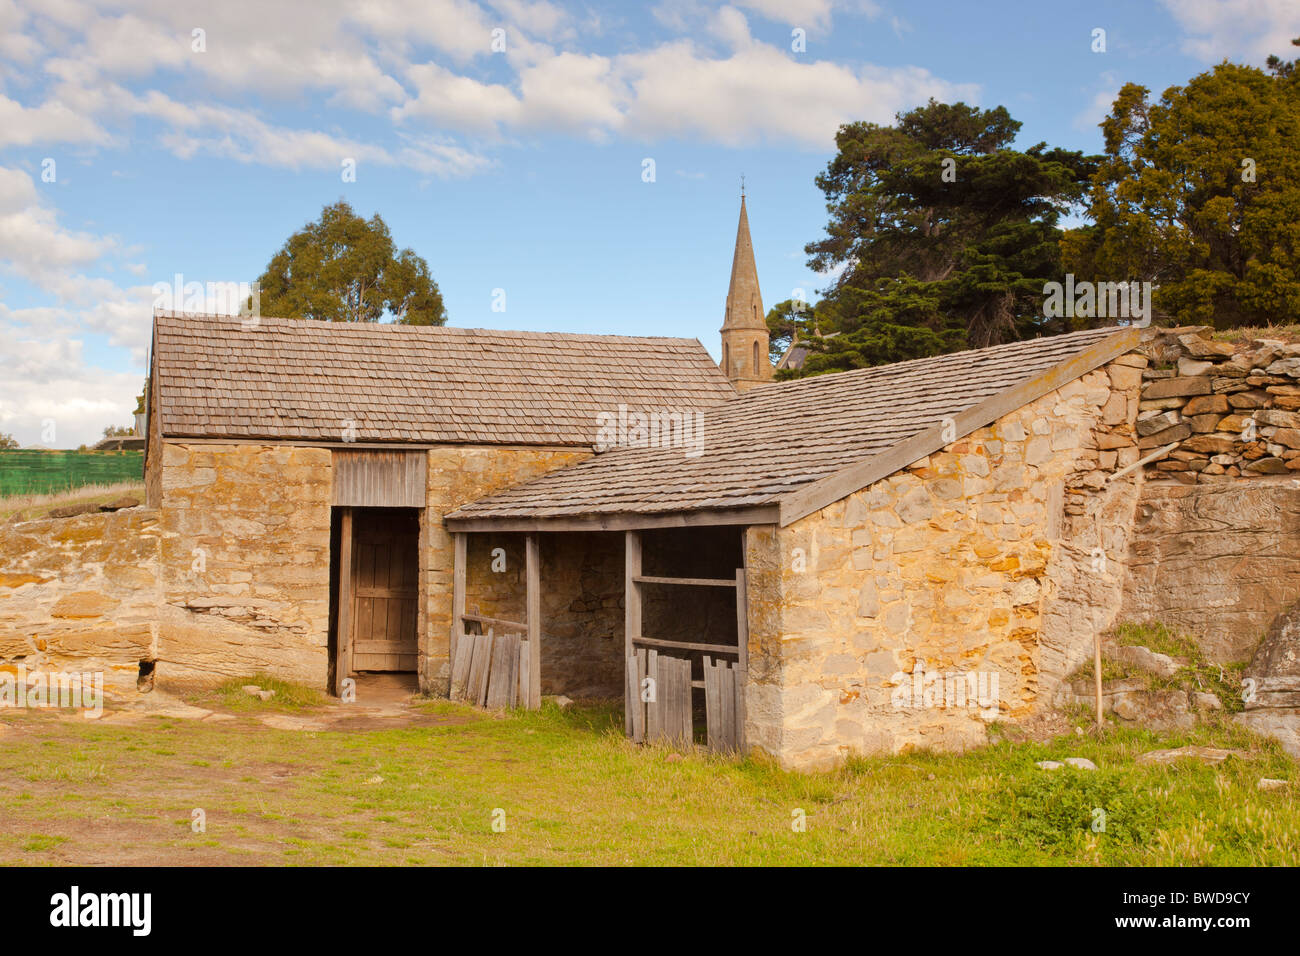 The old convict built stables in the historic town of Ross stand near the village church - Stock Image